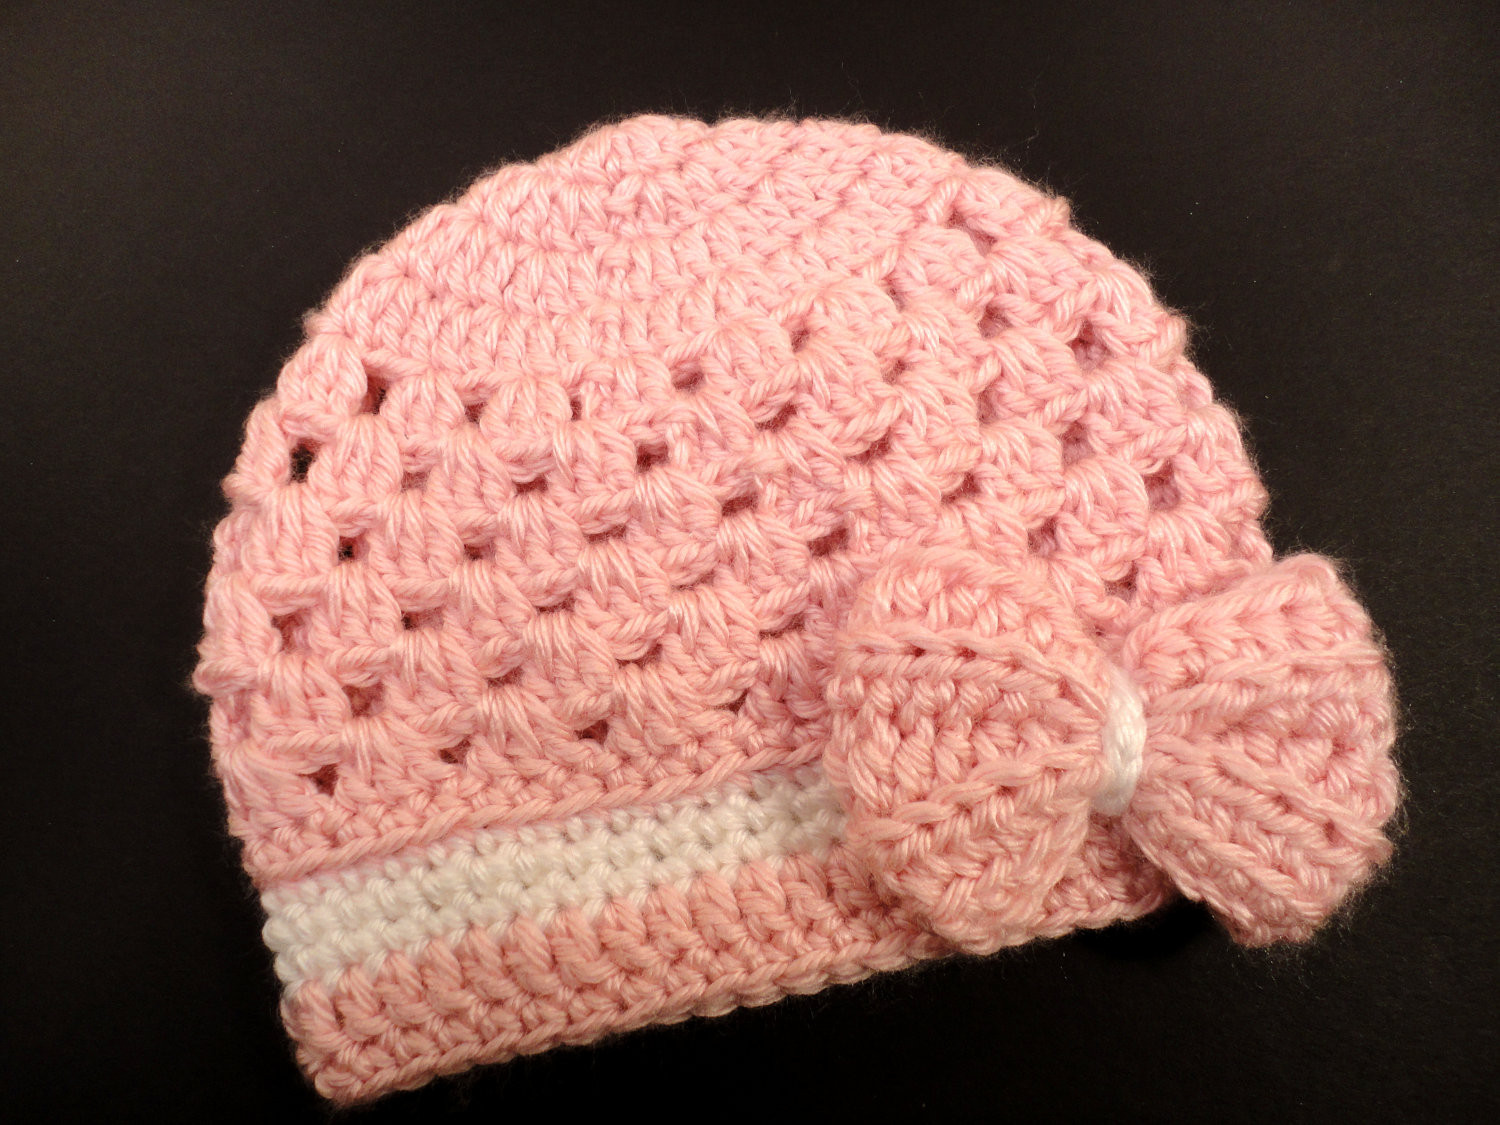 Crochet Beanie Pattern New Crochet Newborn Baby Hats with Pumpkin Cupcake Pattern Of Luxury 43 Pics Crochet Beanie Pattern